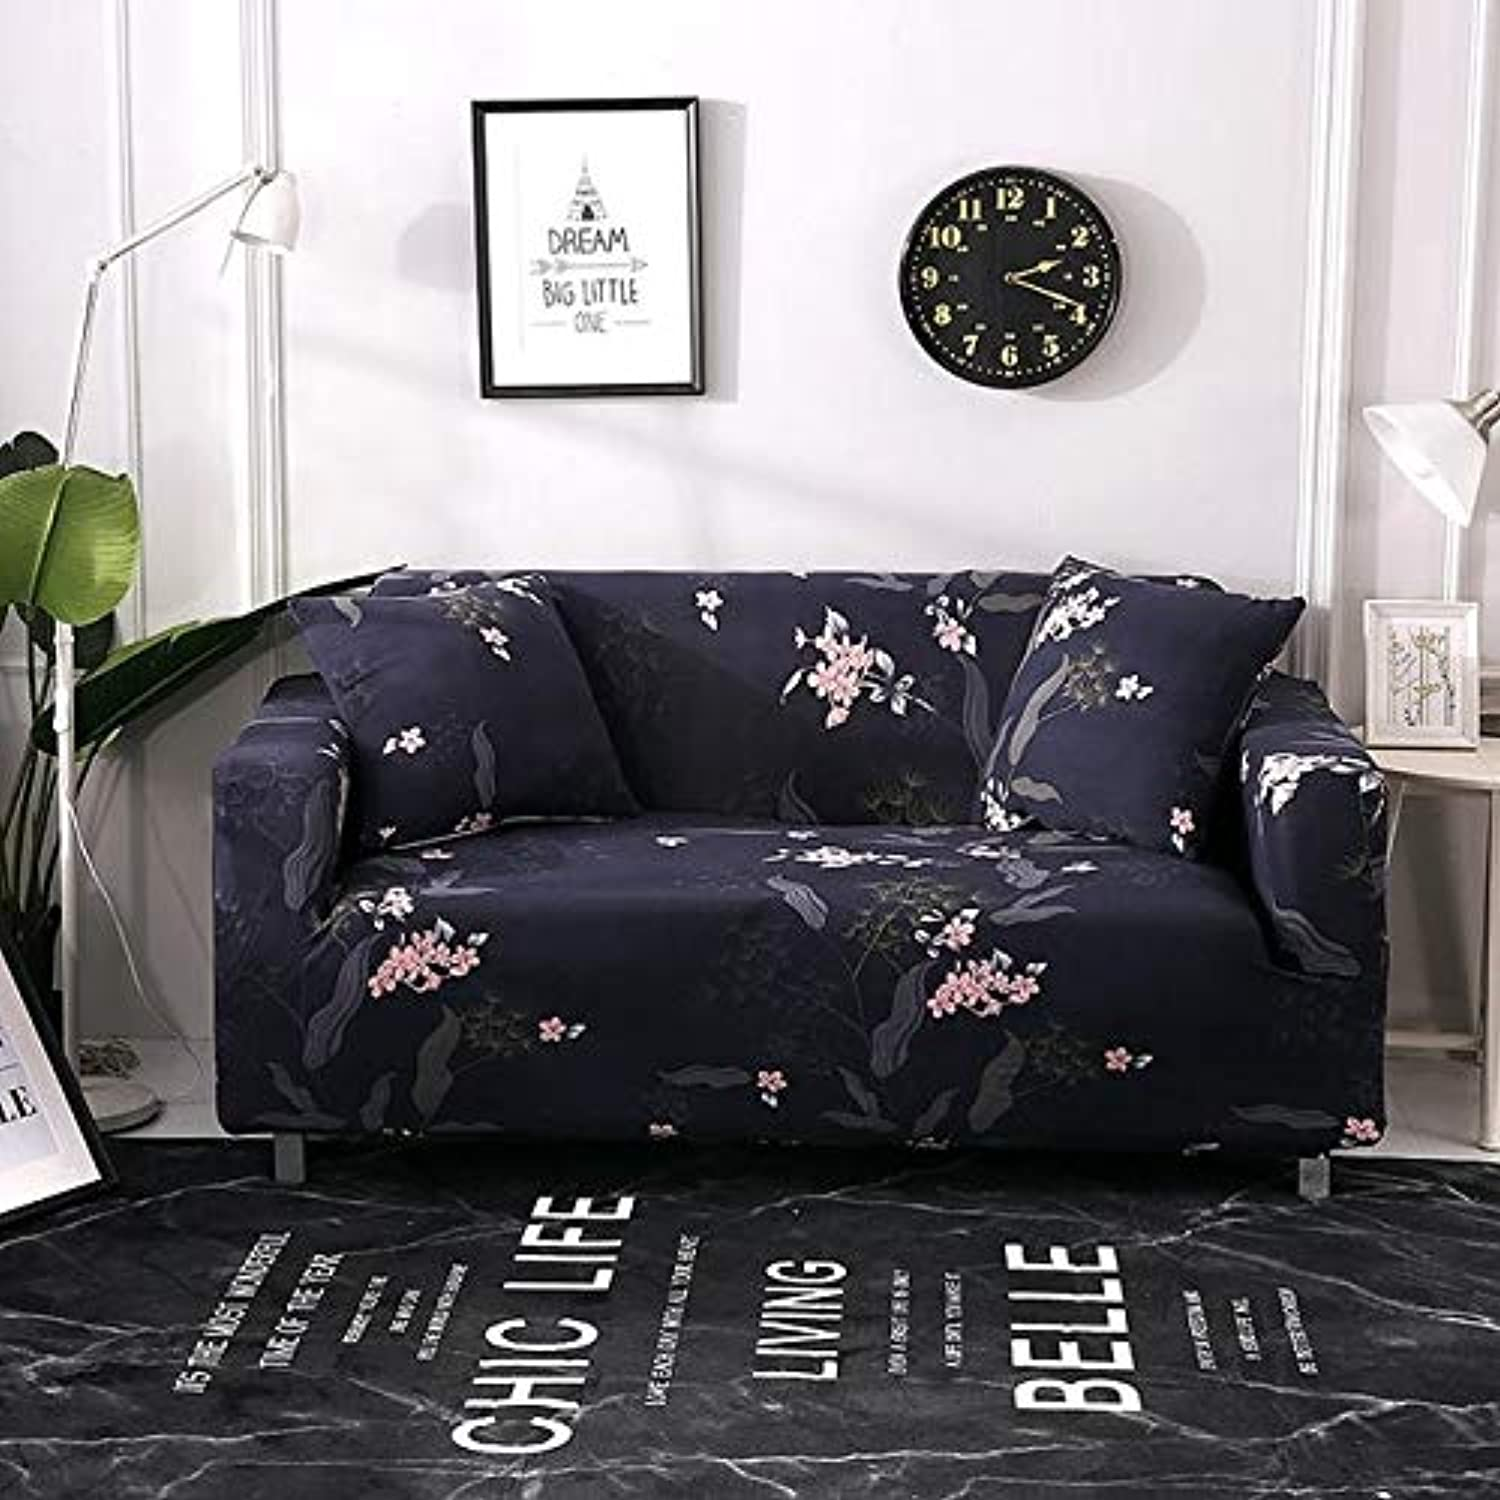 Spandex Stretch Floral Printing Purple Sofa Cover Removable Elastic All-Inclusive Slipcovers Black Couch Case for Living Room   04, One seat